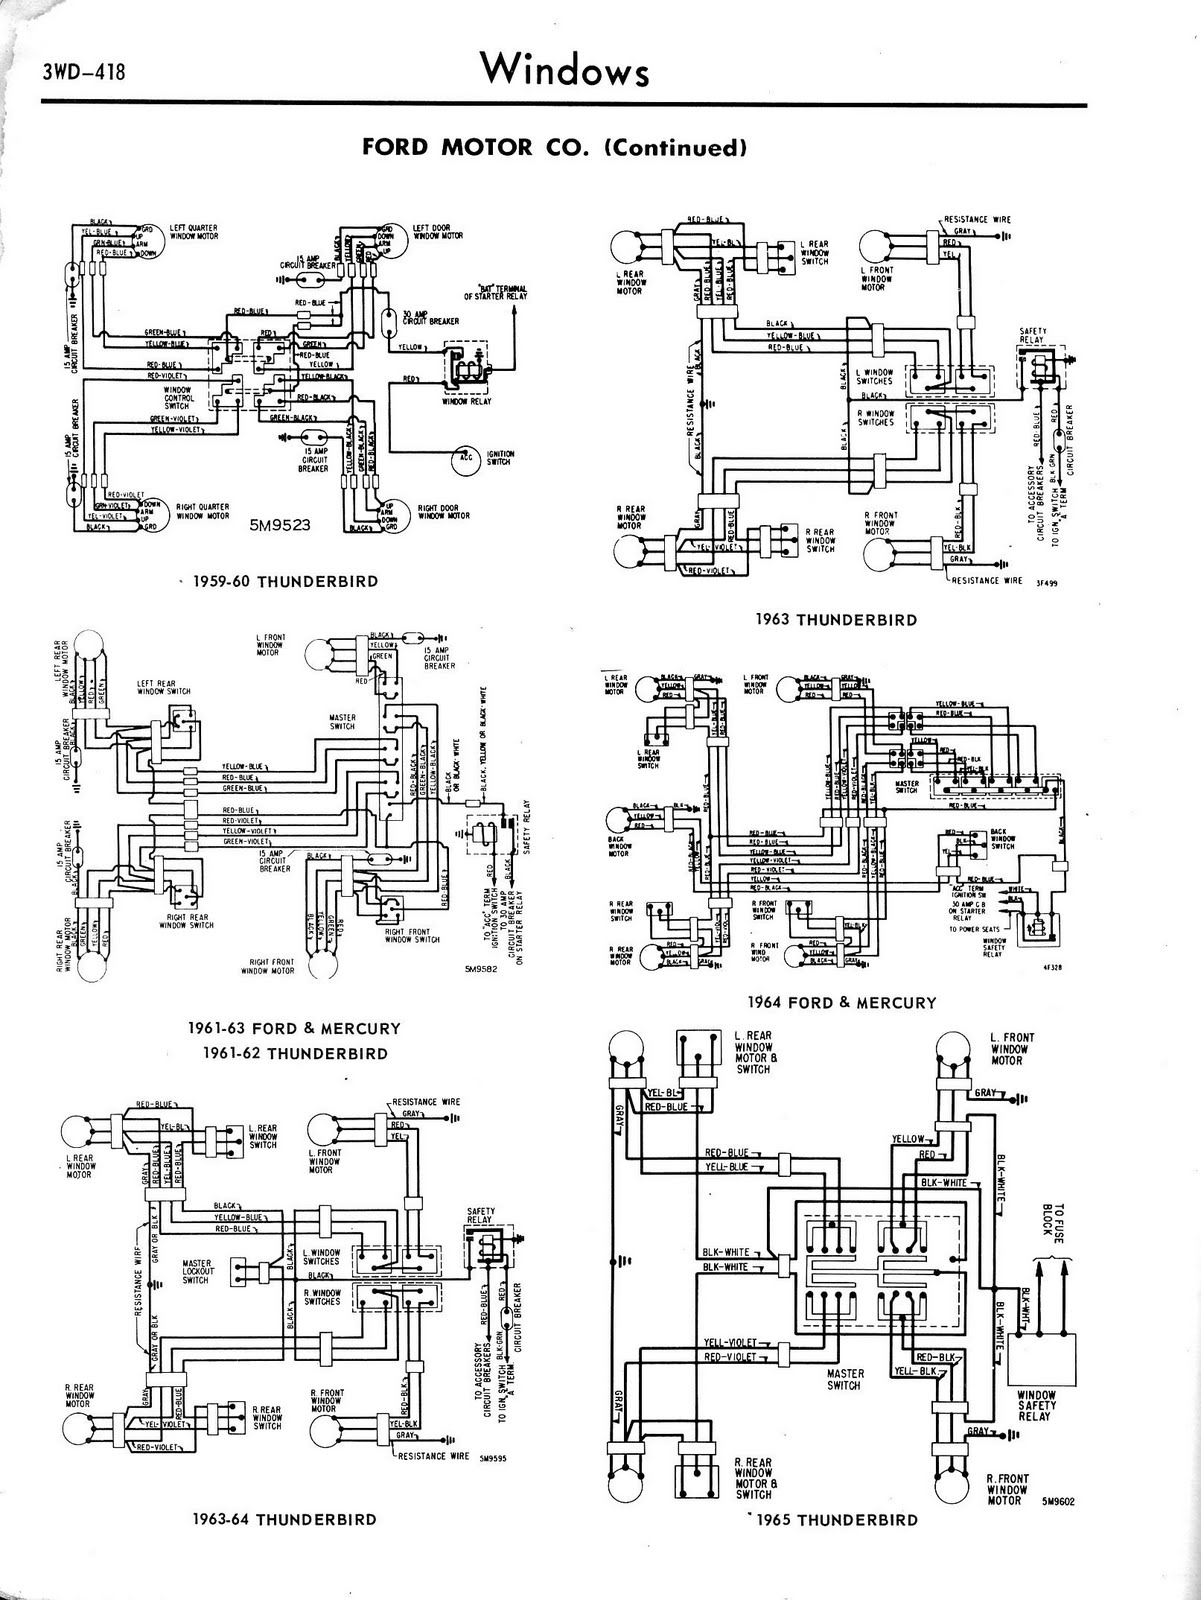 1965 Ford Thunderbird Alternator Wiring Diagram 47 Mustang Harness